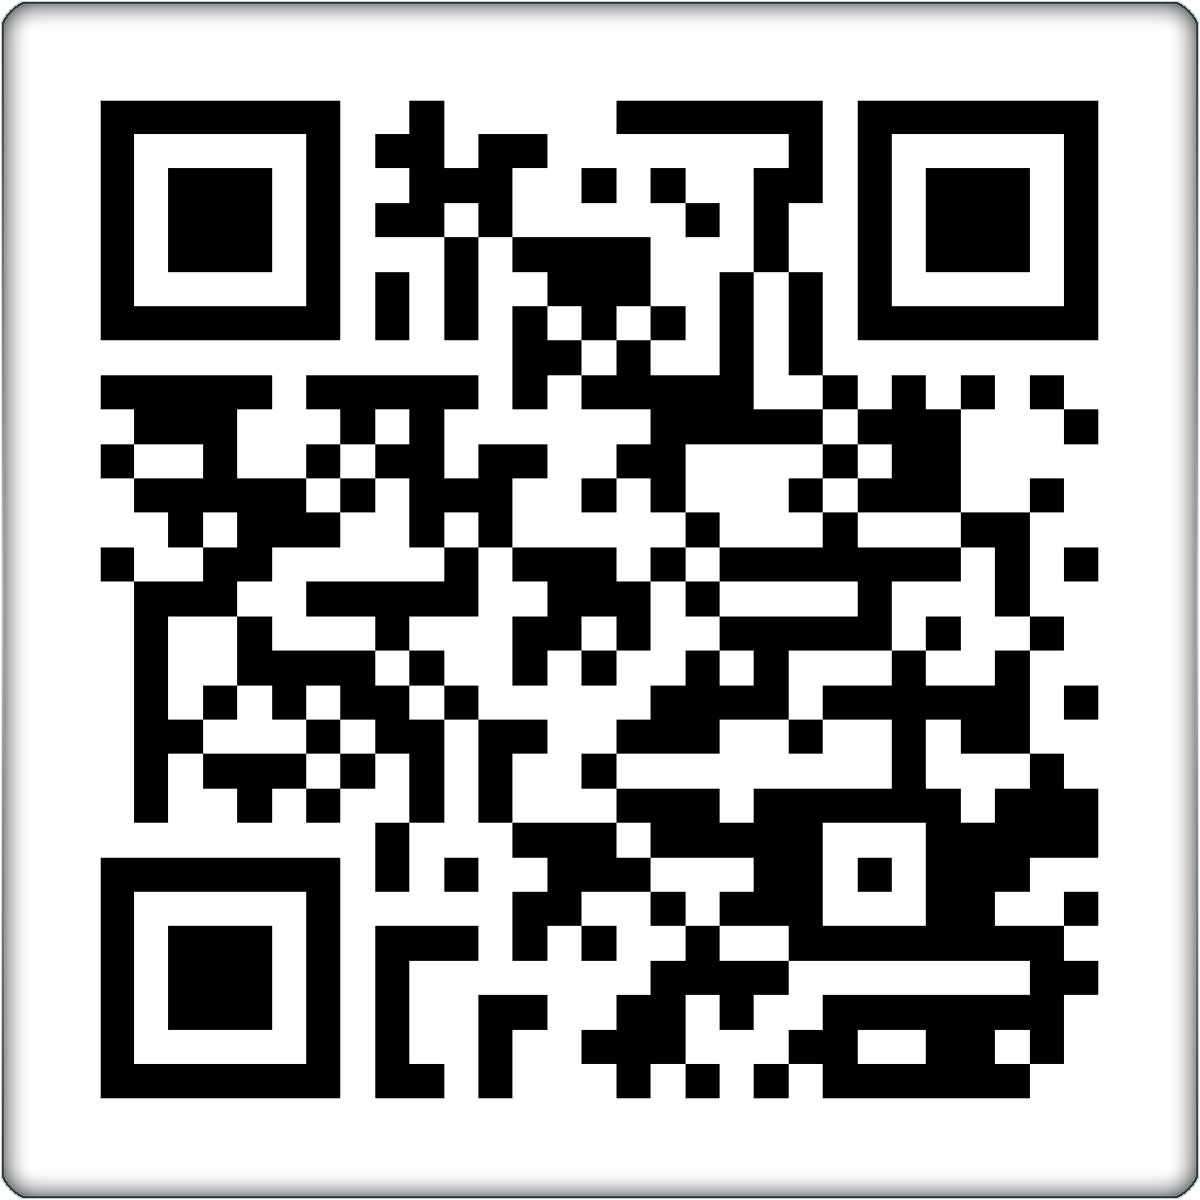 qr code aufkleber konturgeschnitten zum scannen ebay. Black Bedroom Furniture Sets. Home Design Ideas